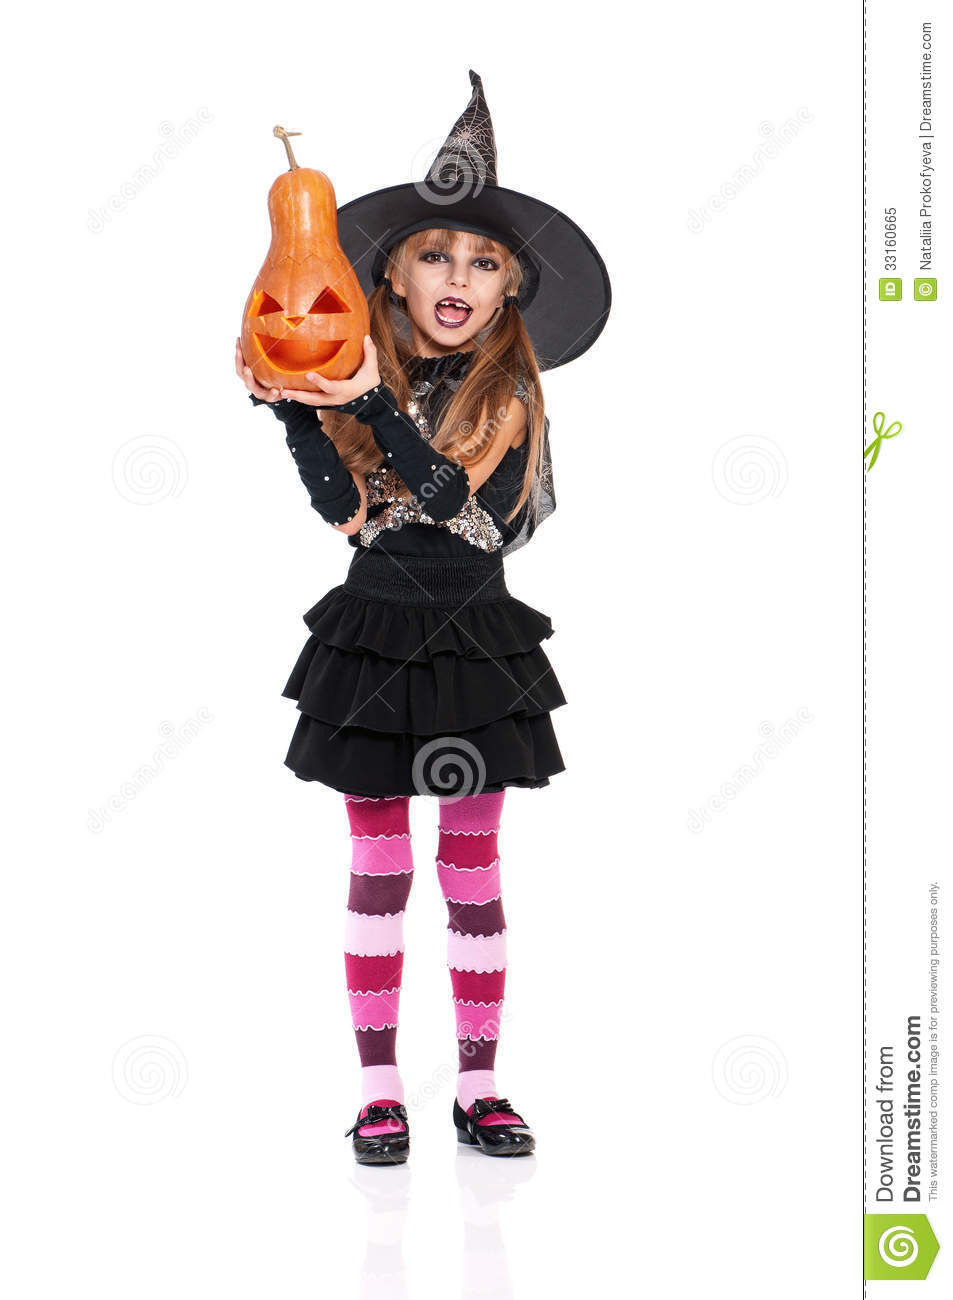 Little Girl In Halloween Costume Royalty Free Stock Photo - Image ...